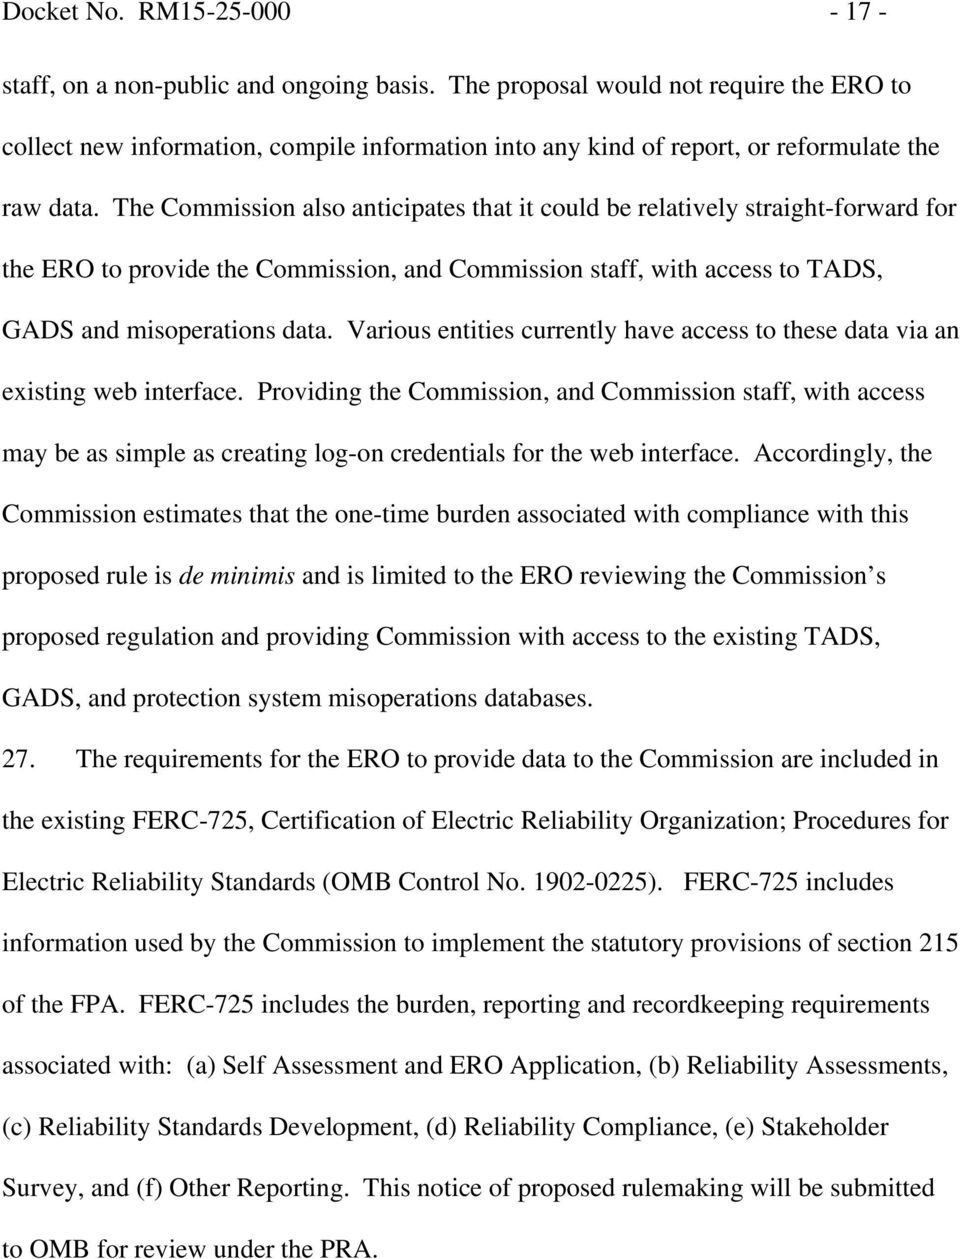 The Commission also anticipates that it could be relatively straight-forward for the ERO to provide the Commission, and Commission staff, with access to TADS, GADS and misoperations data.